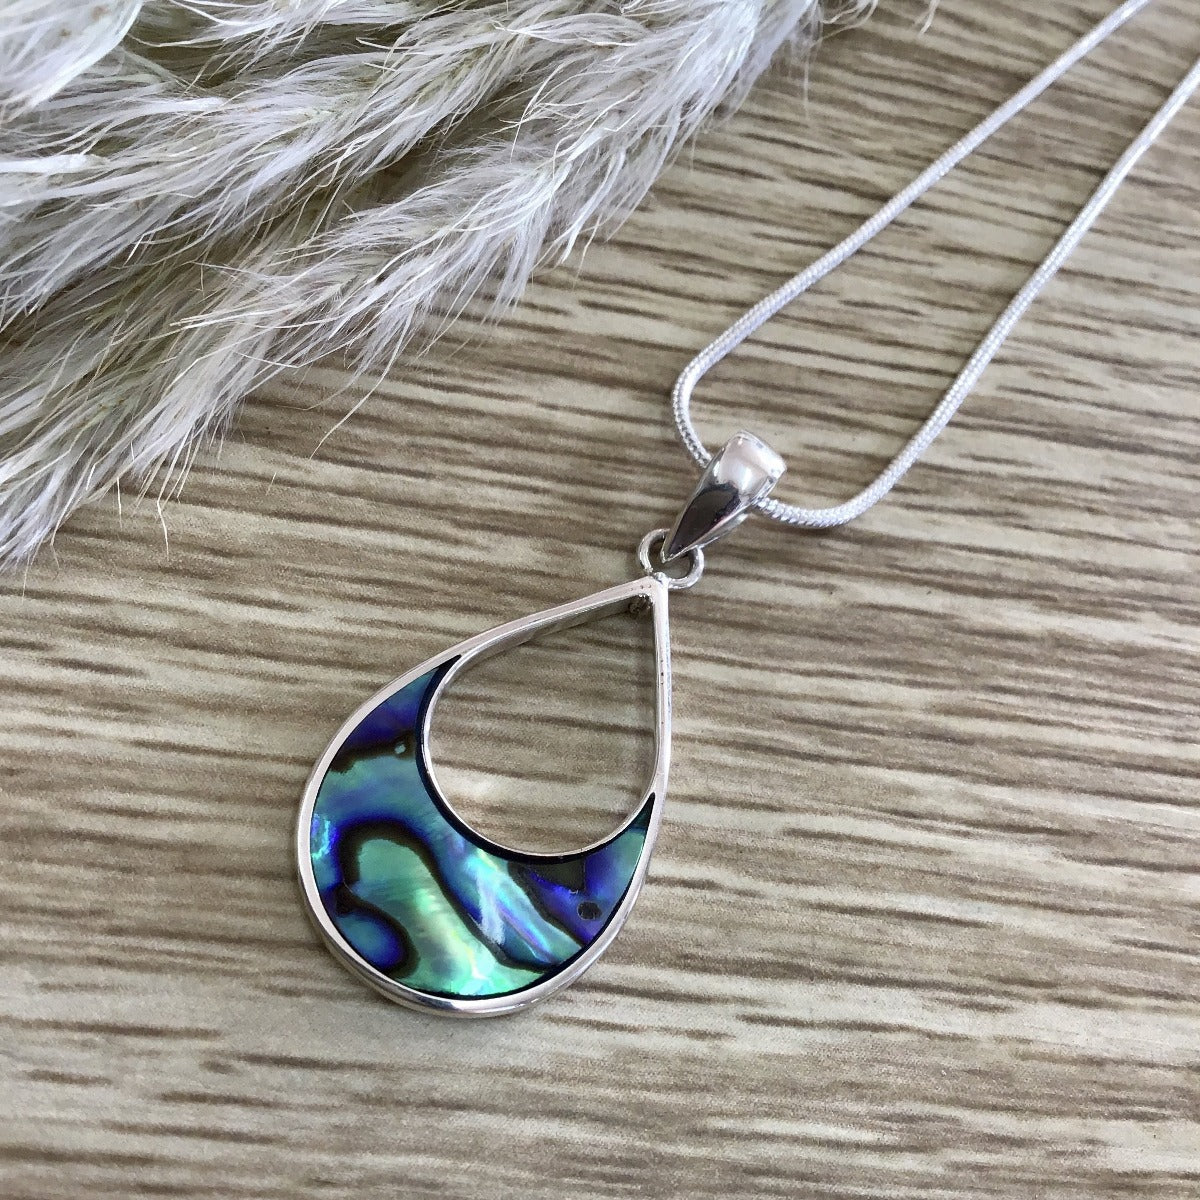 jade kiwi kaikoura sterling silver necklace pendant paua shell inset rounded drop